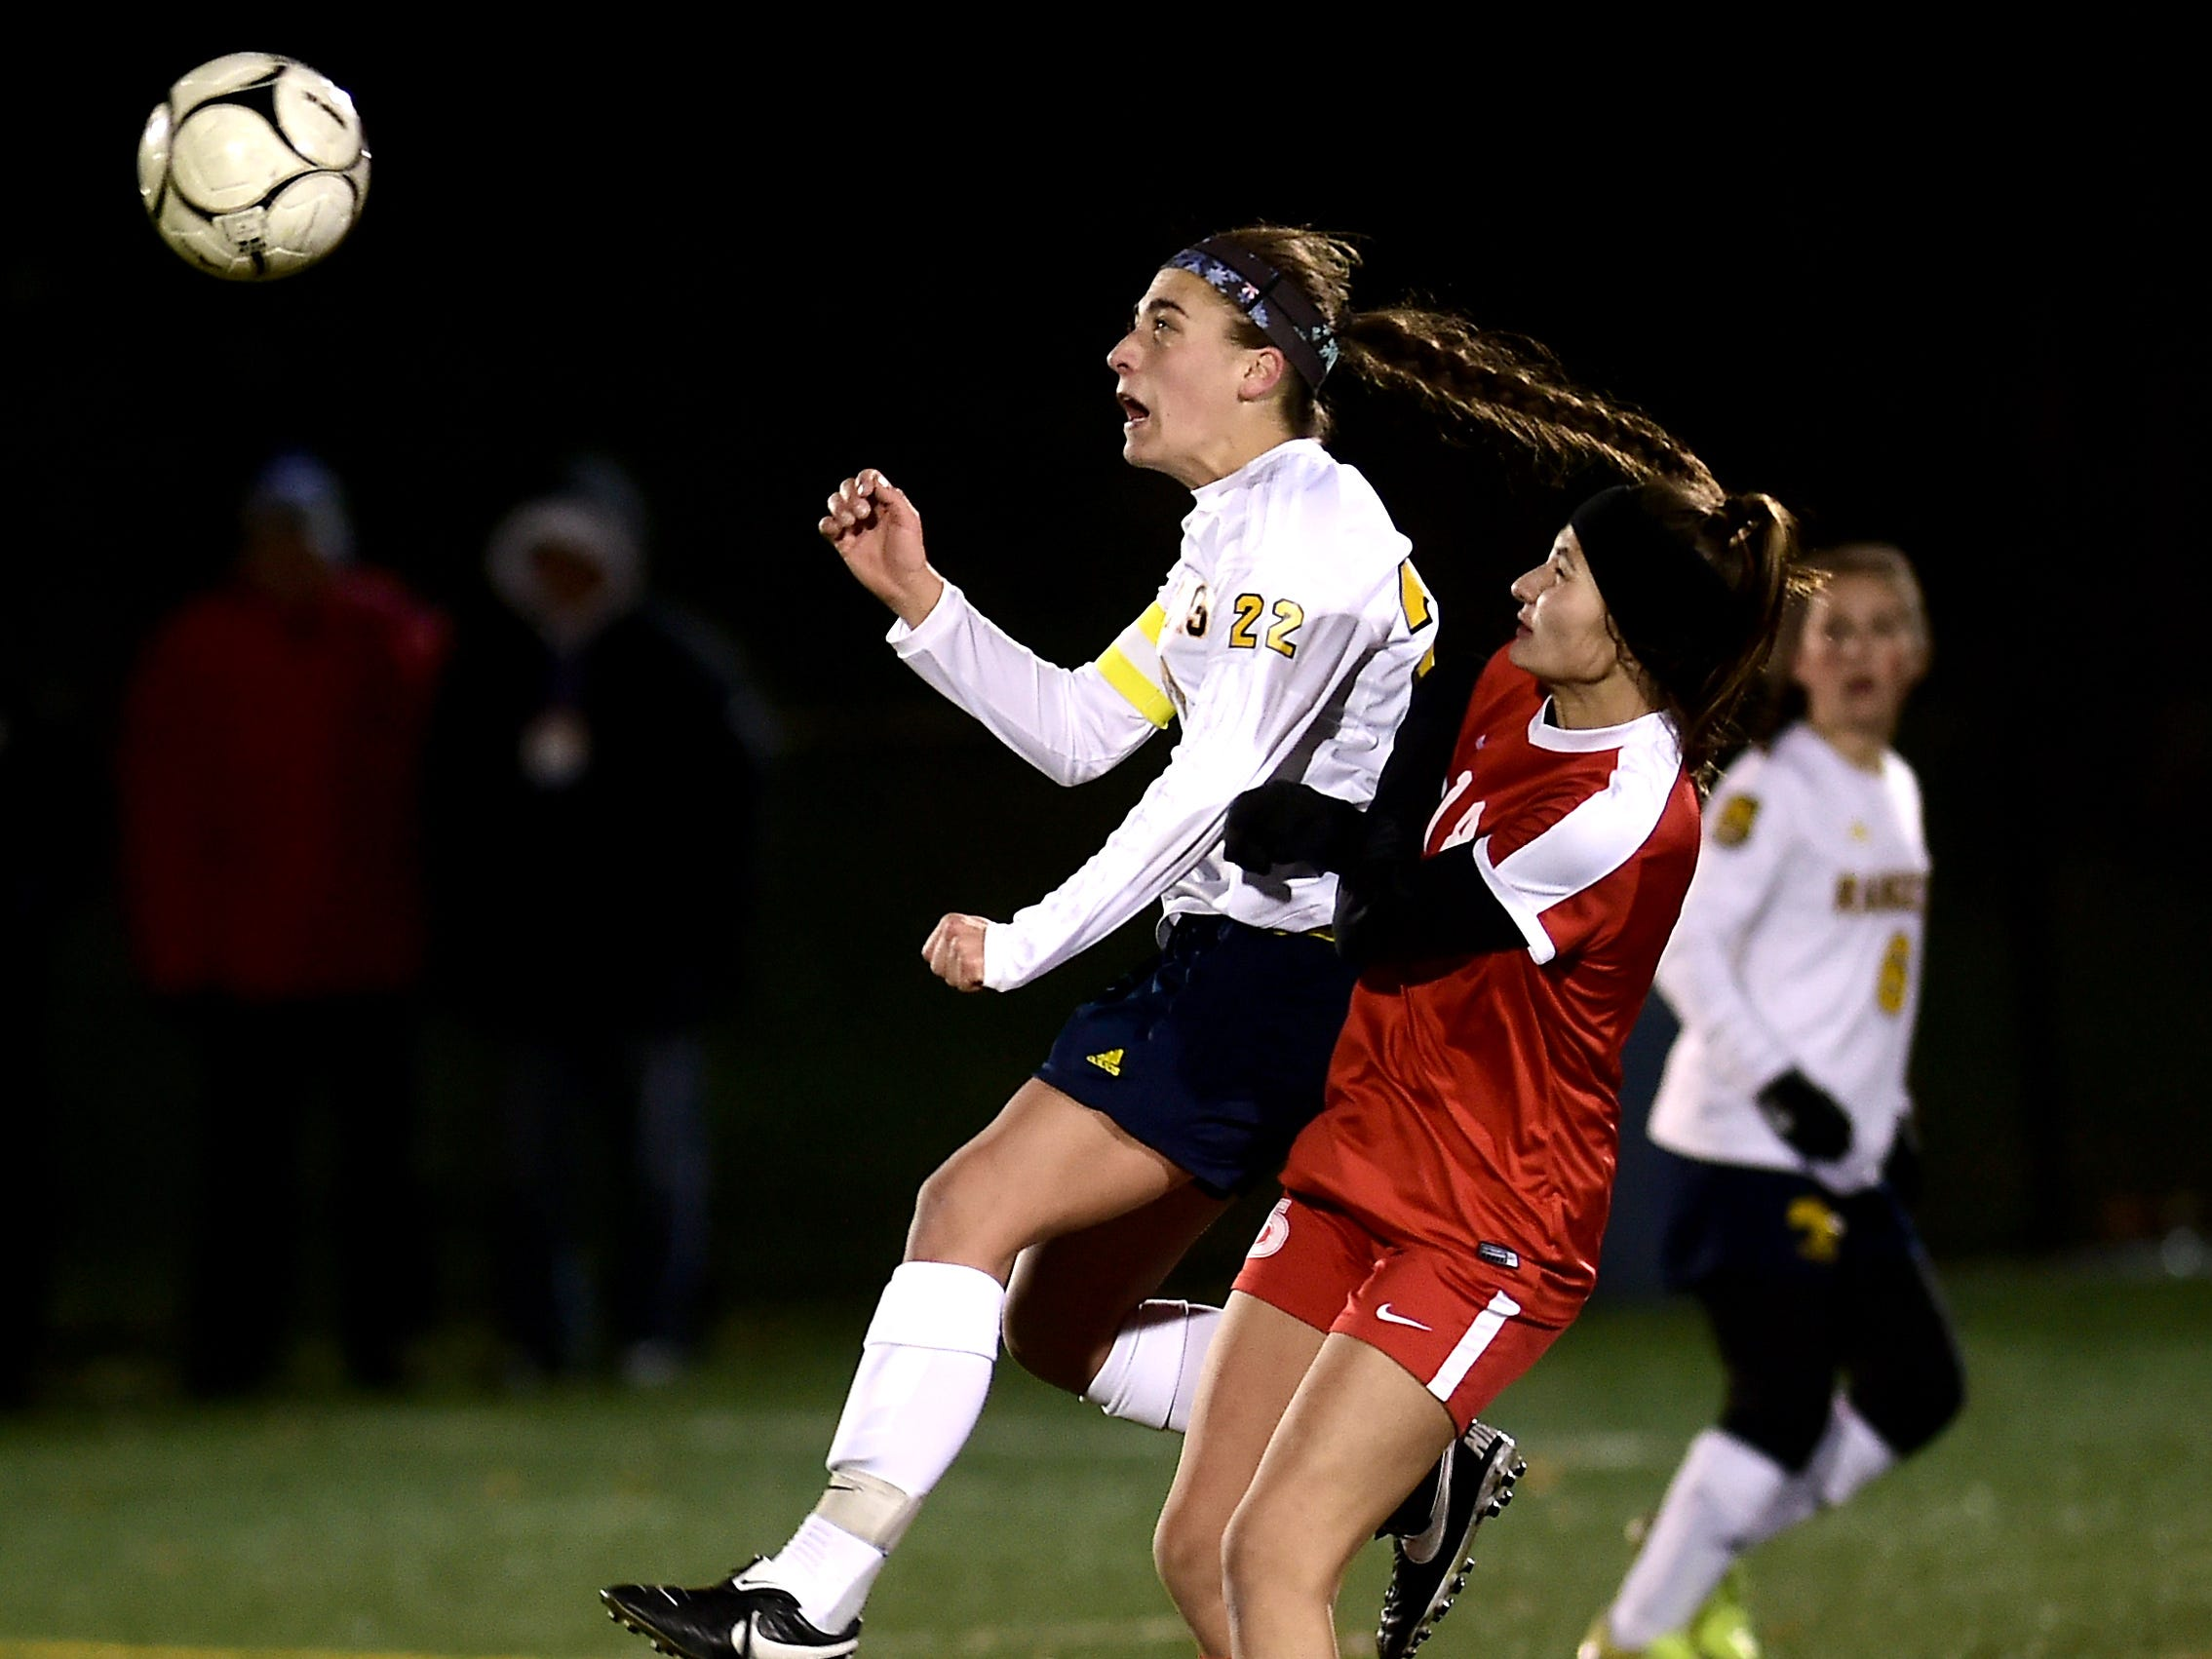 Olivia Wall (22) of Spencerport controls the ball past Tonia Kousmanidis (14) of Jamesville-DeWitt during the Class A NYSPHSAA Girls Soccer Championship semifinal at Tompkins Cortland Community College on Nov. 10, 2018.